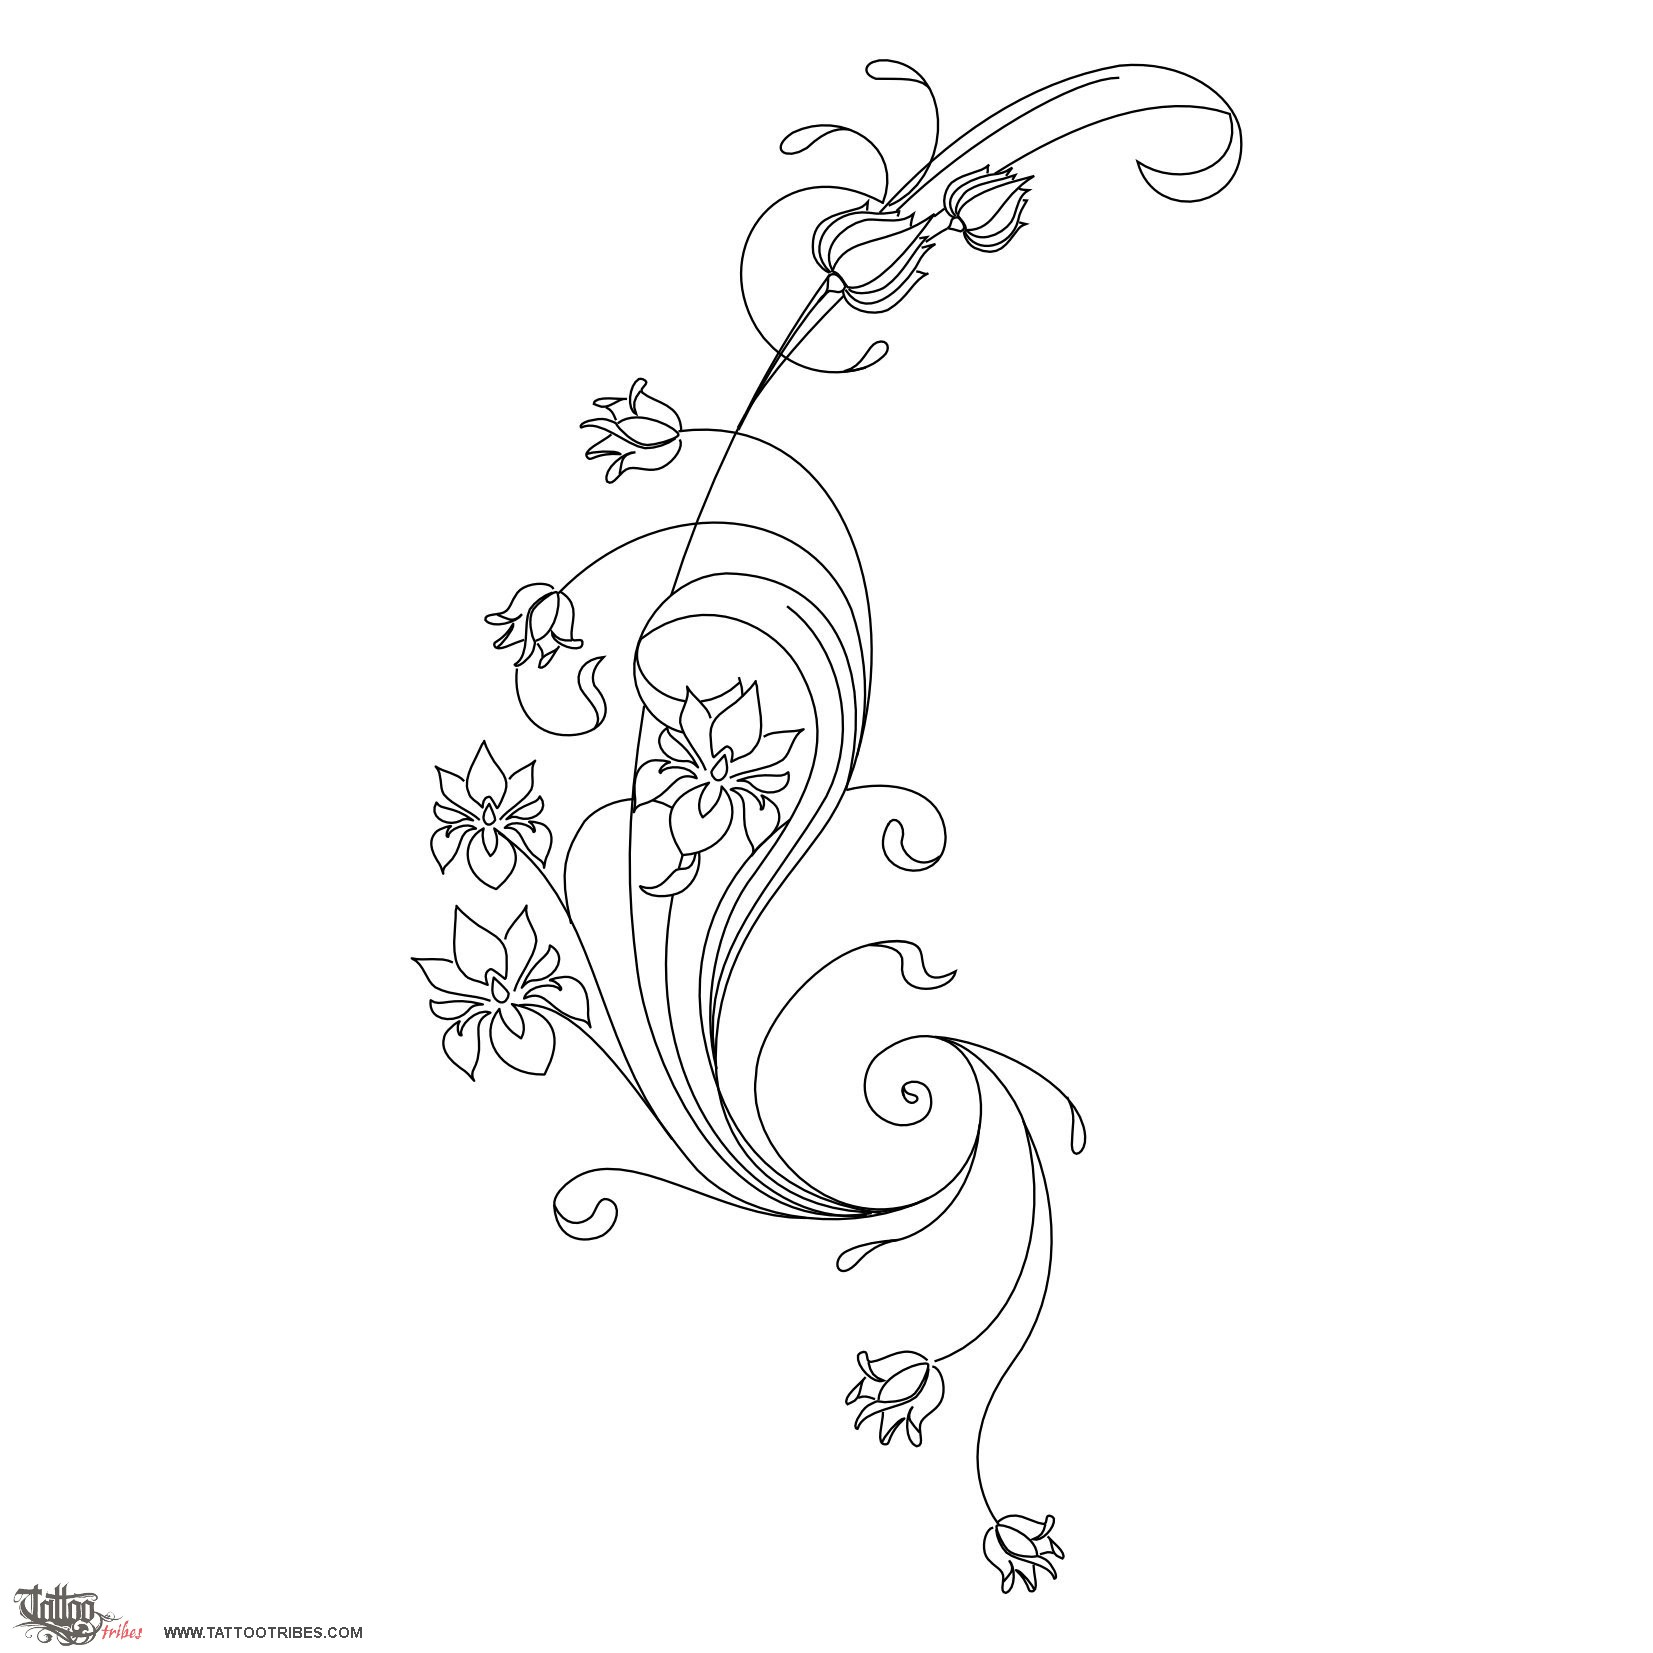 Tattoo Of Art Nouveau Flowers Beauty Passion Tattoo Ideas And Designs